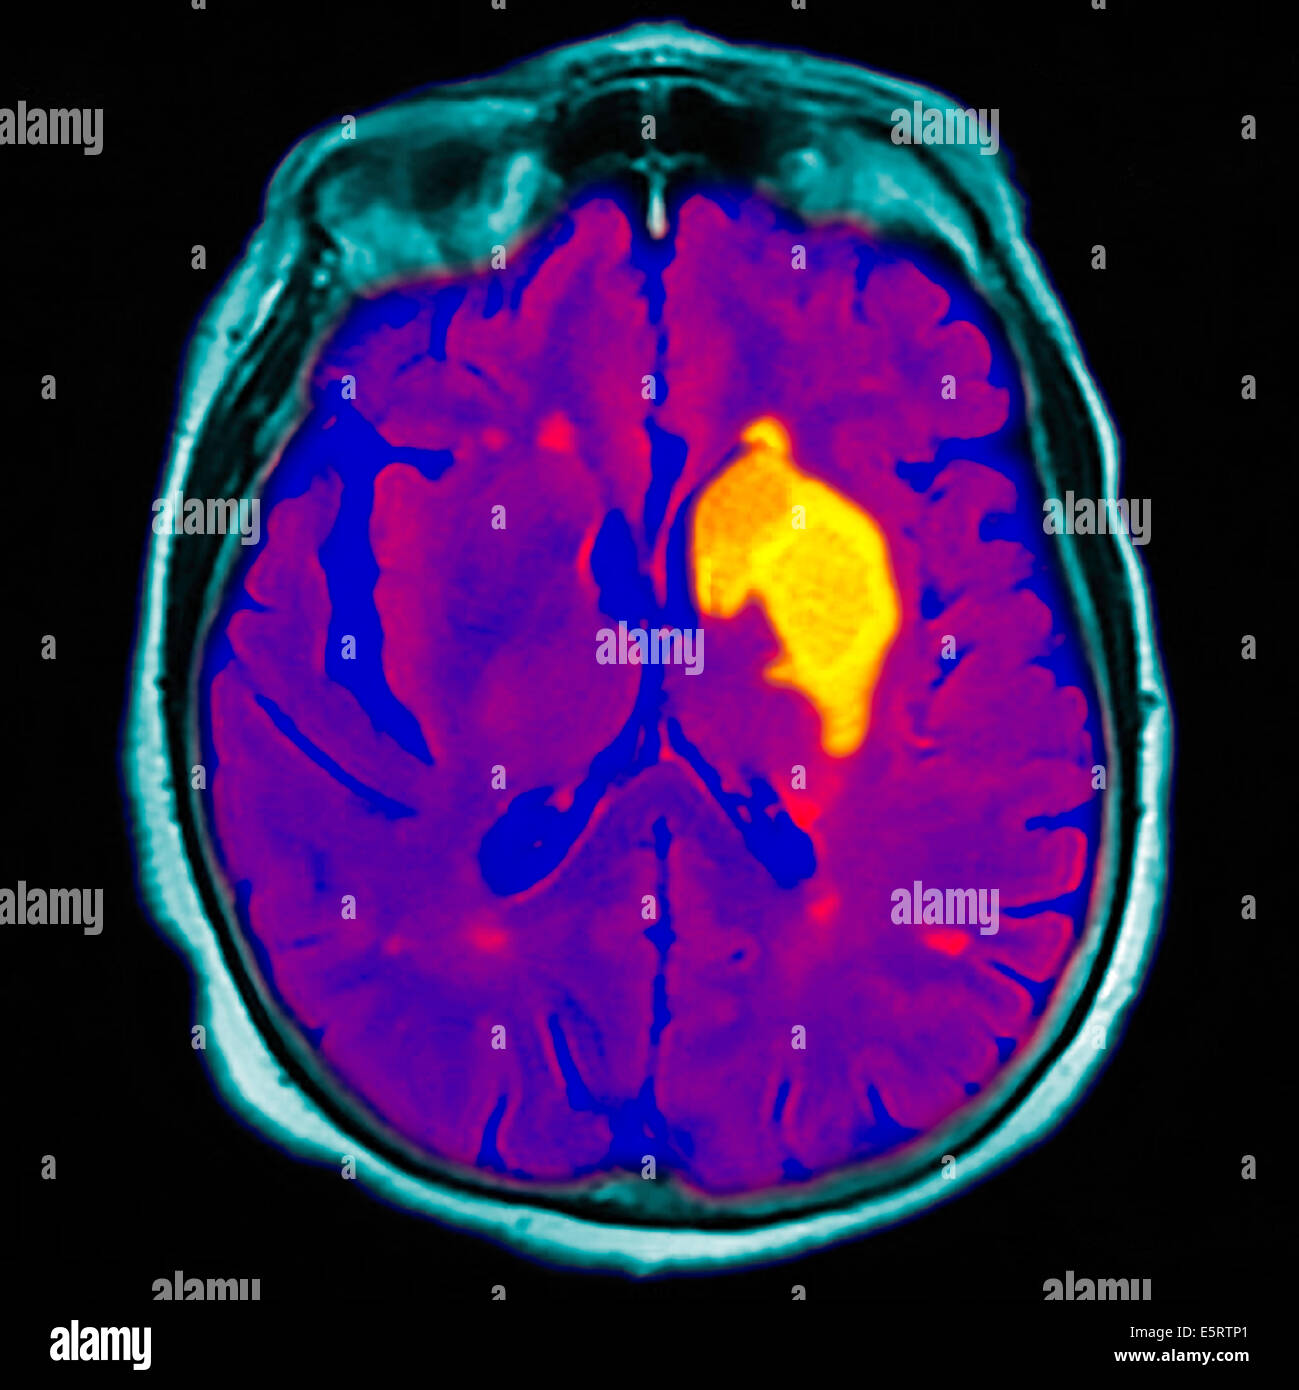 Coloured magnetic resonance imaging (MRI) scan and CT of an axial section through the brain of patient, showing - Stock Image